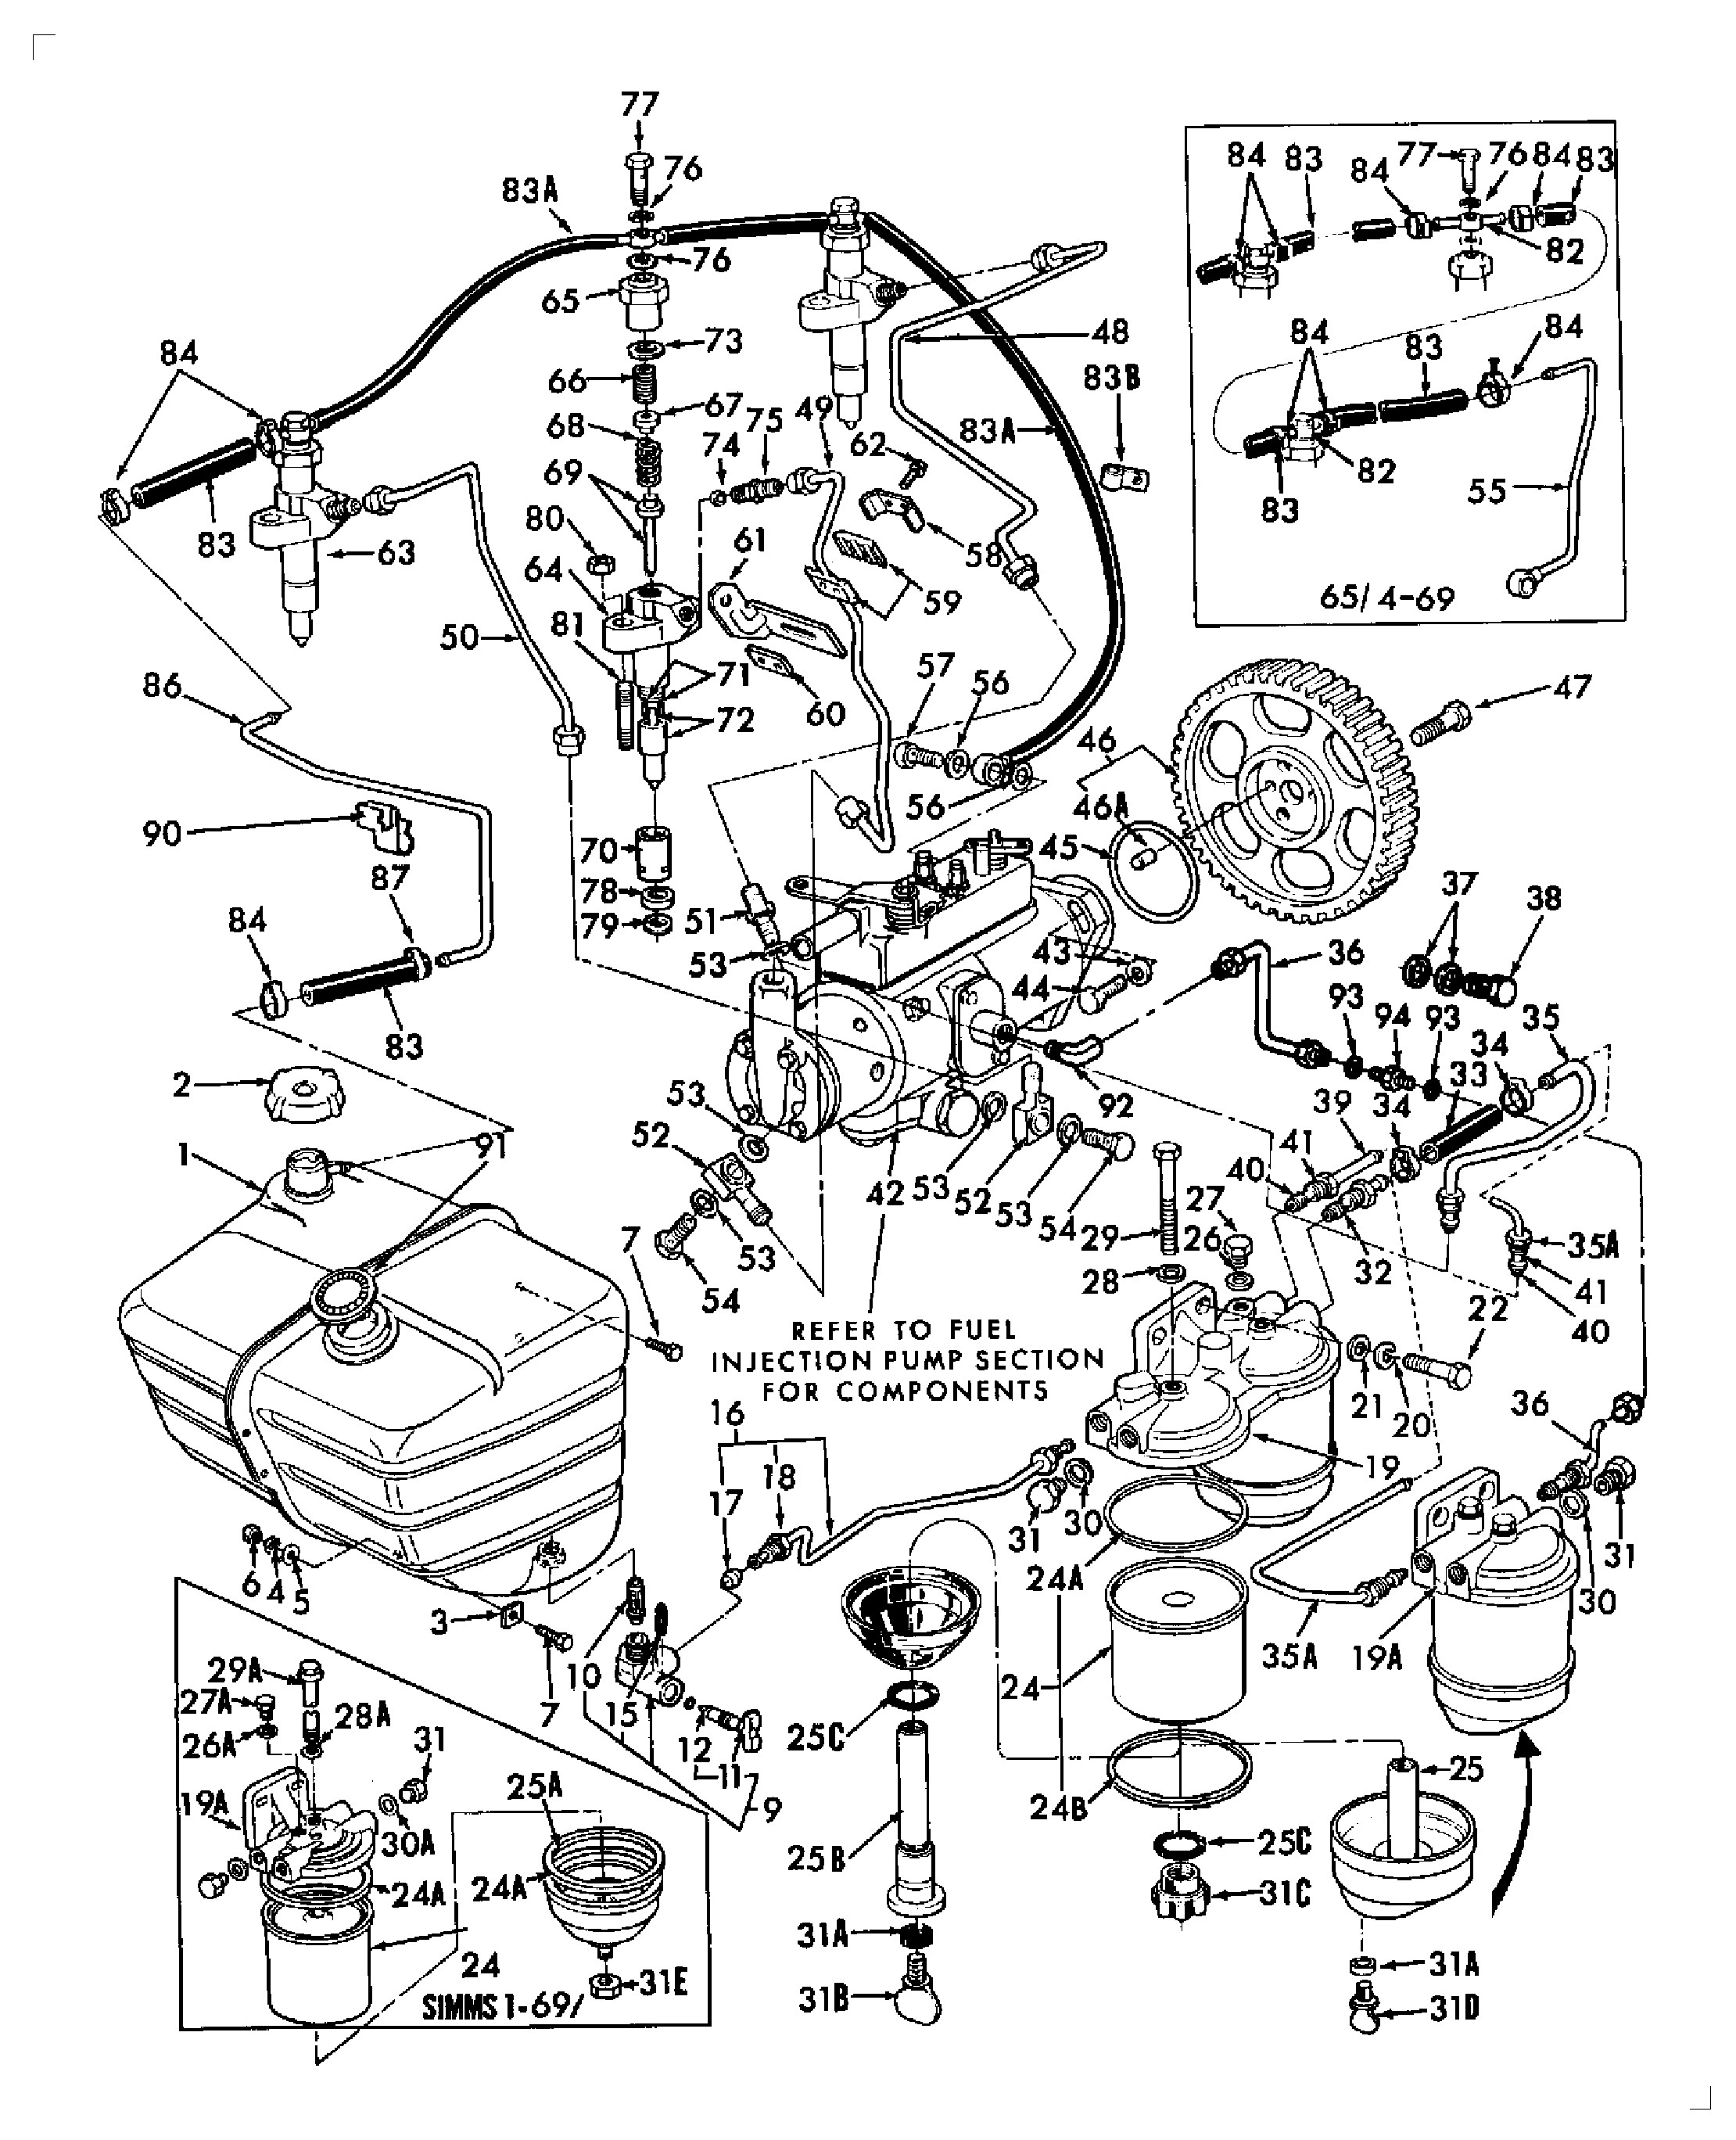 ford 4000 tractor parts diagram owner manual \u0026 wiring diagramford 4000 tractor parts diagram diagram data schema 1965 ford 4000 tractor parts ford 4000 tractor parts diagram